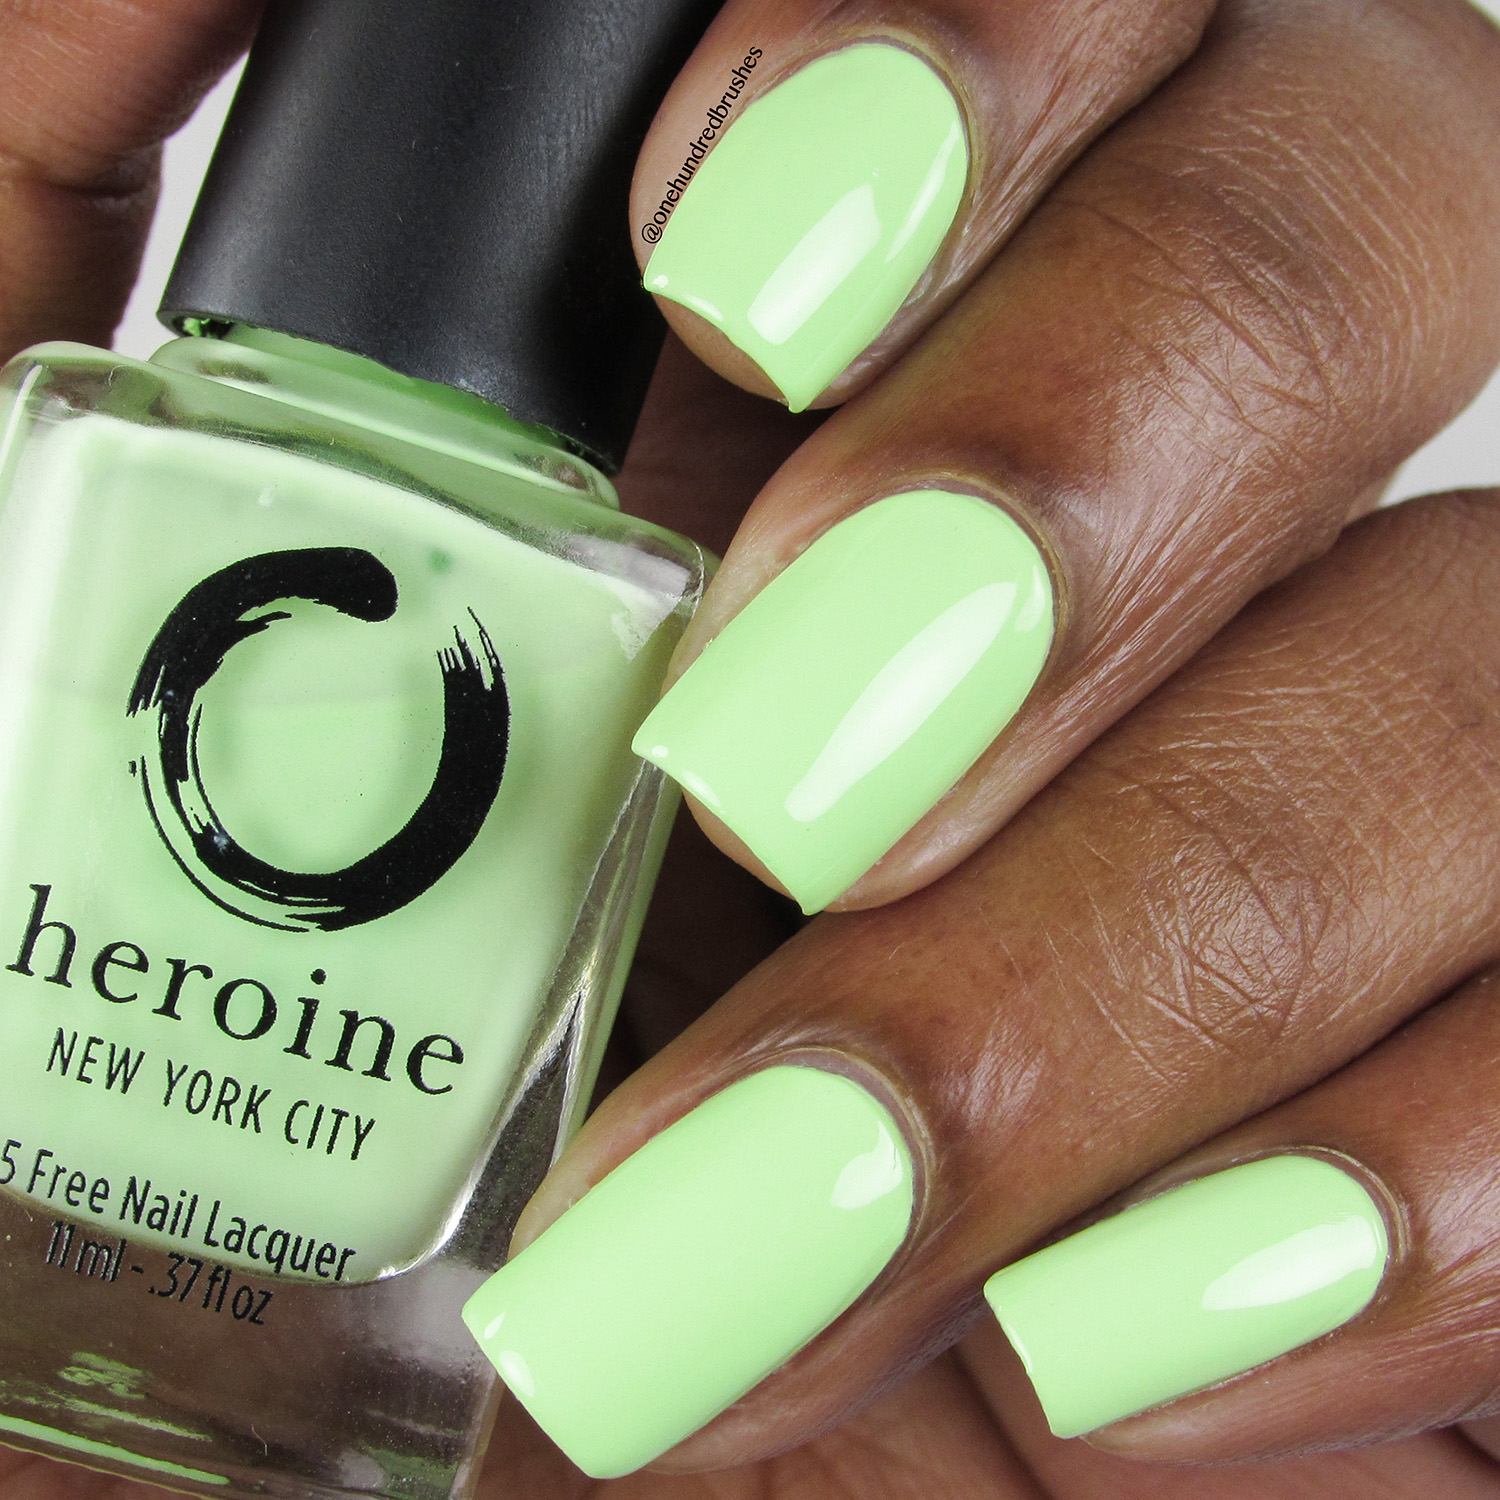 Sublime - Heroine NYC - Bottle Front - The Neons - lime green